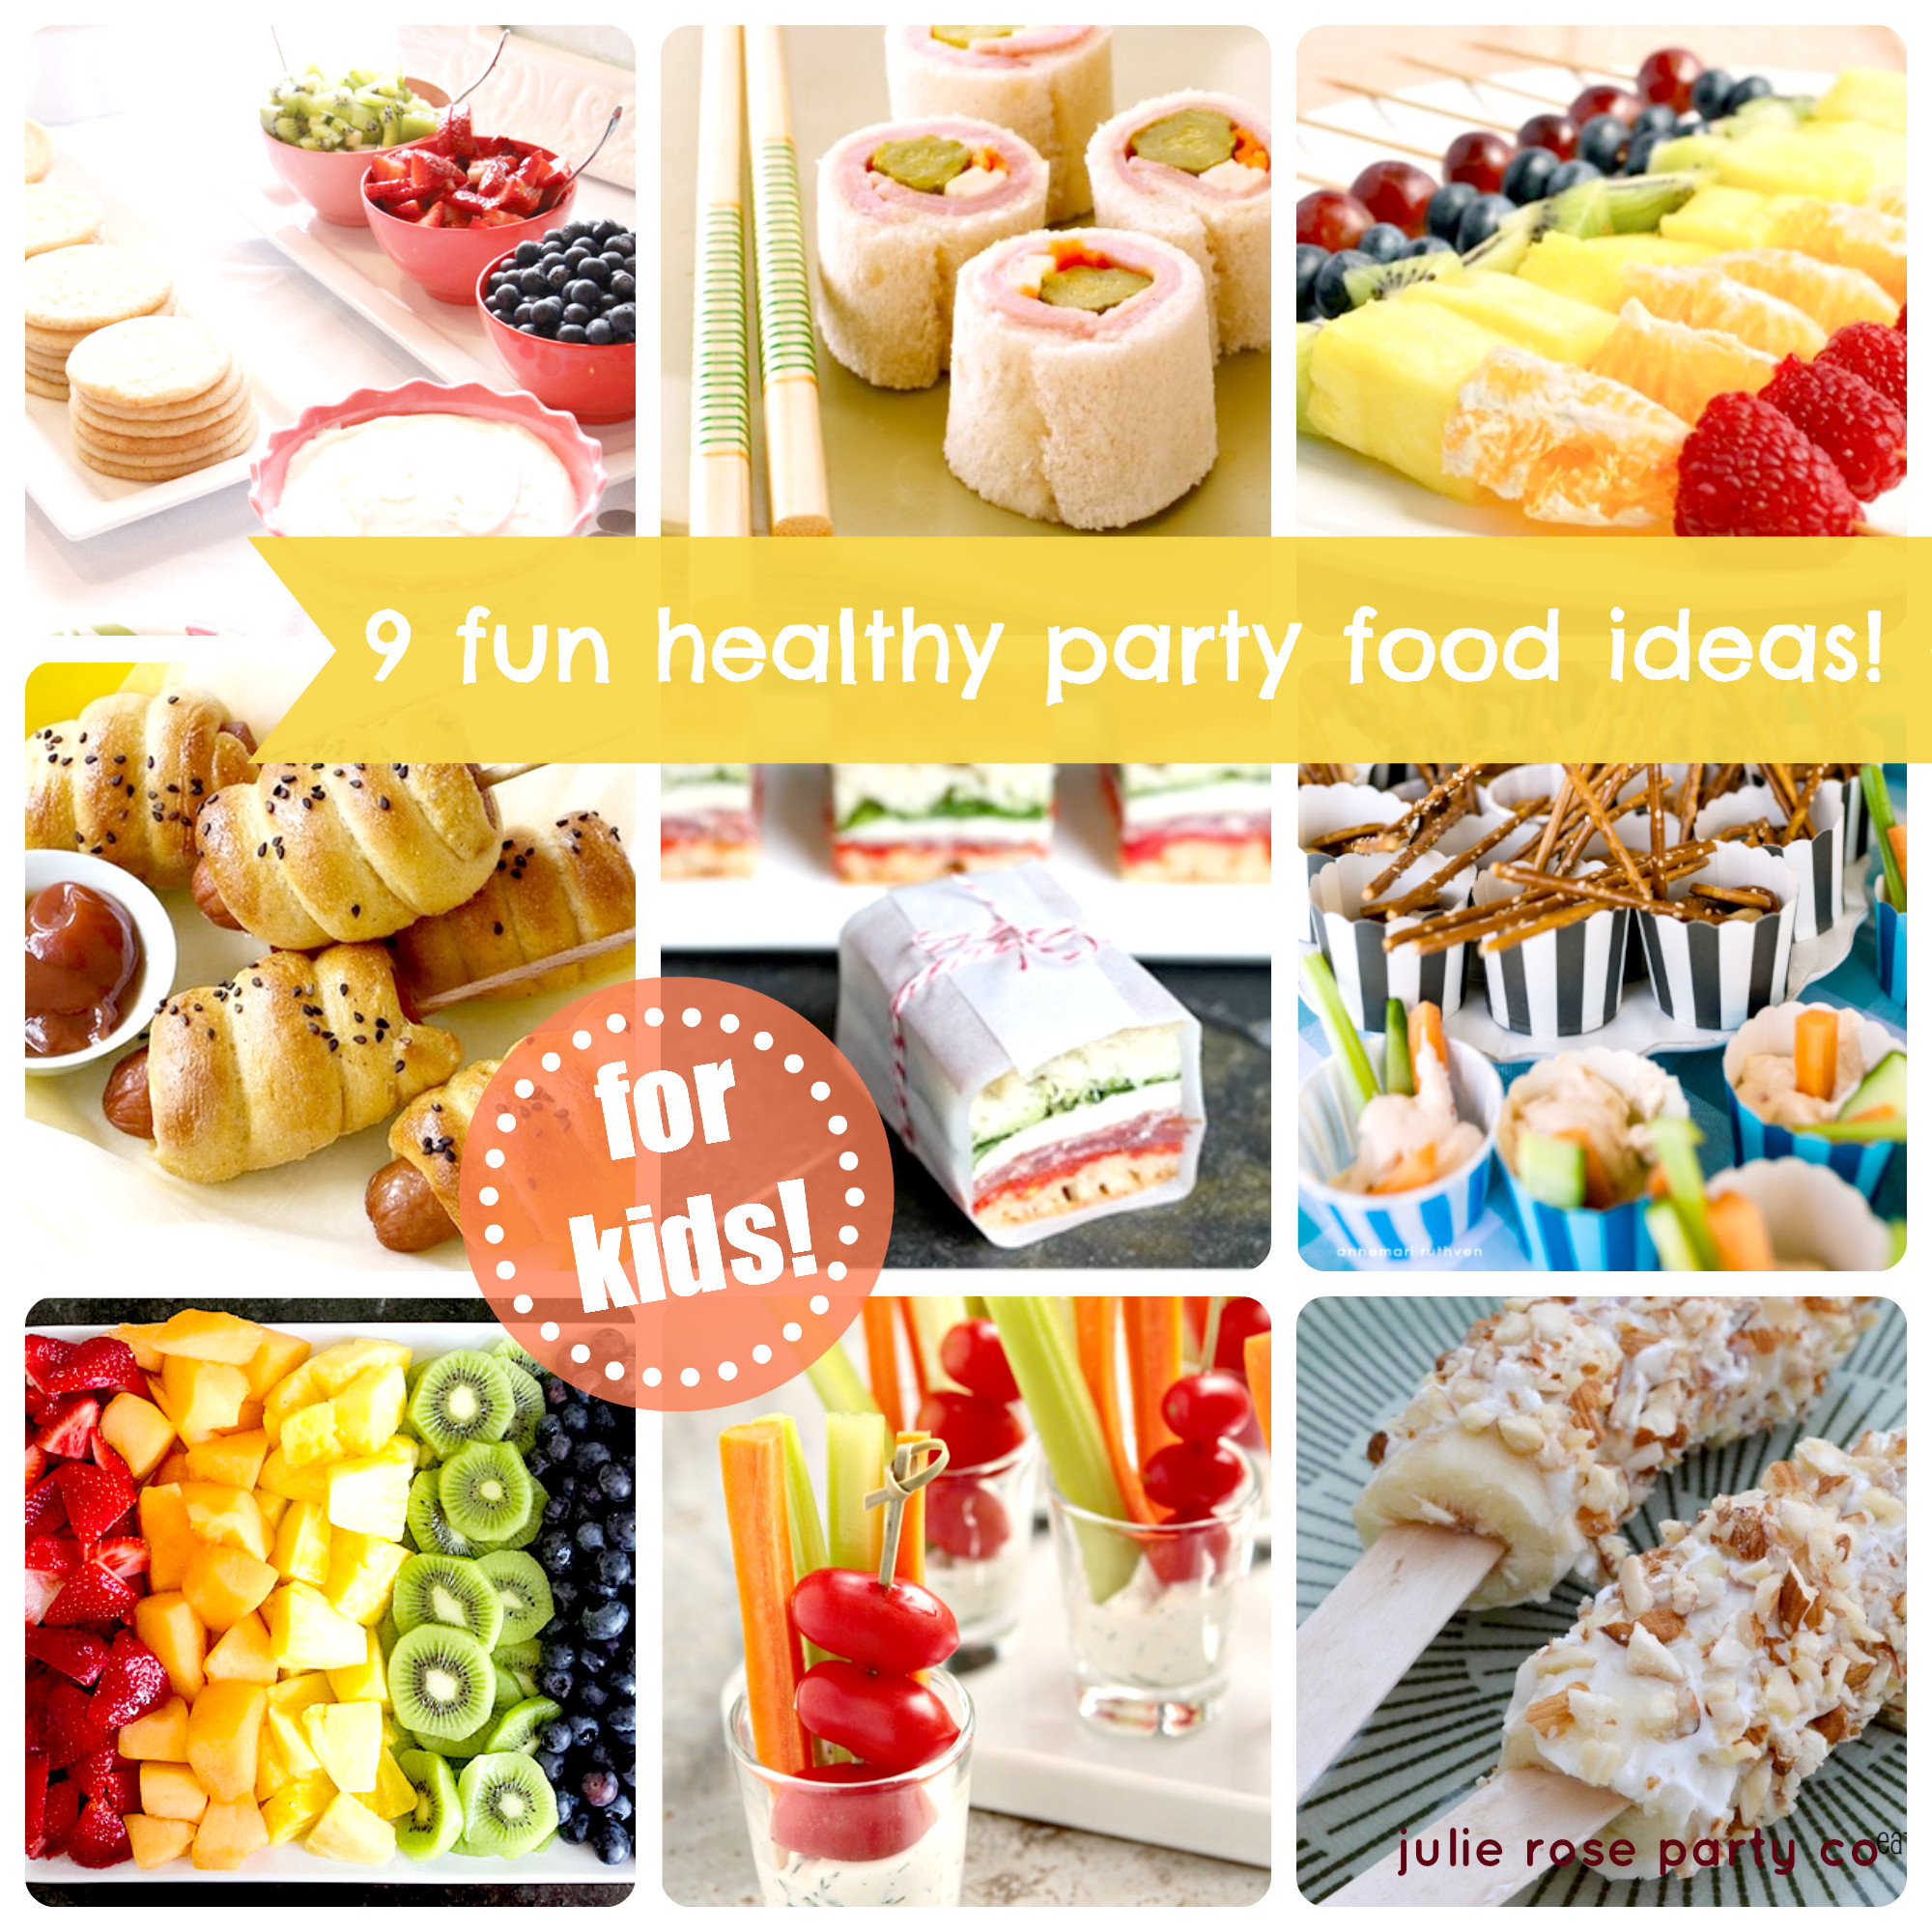 Party Food Ideas For Kids  9 fun and healthy party food ideas kids